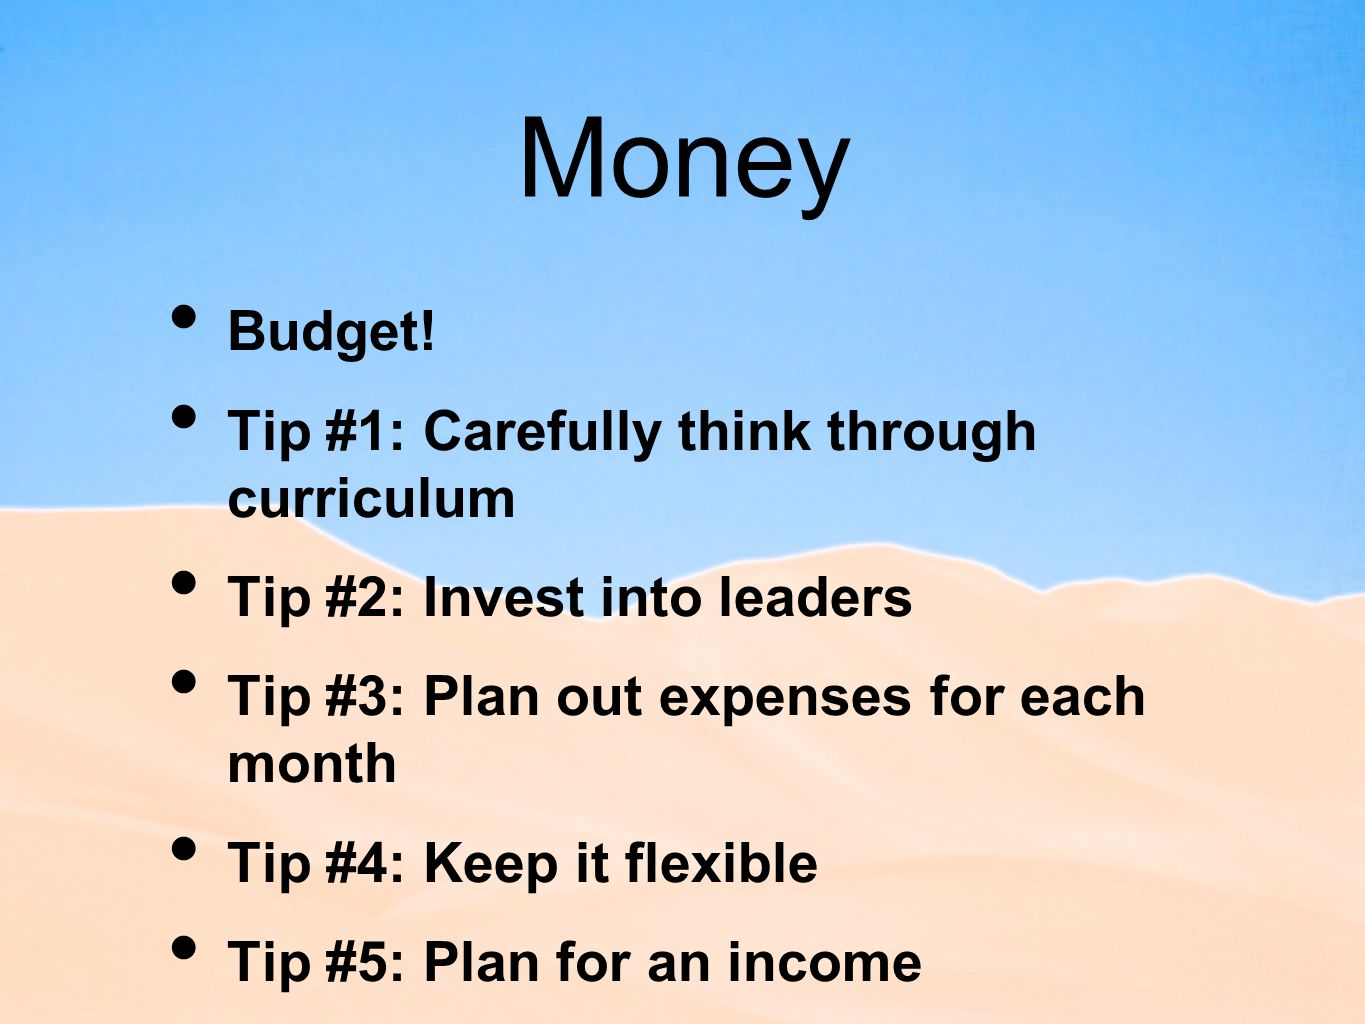 Money Budget! Tip #1: Carefully think through curriculum Tip #2: Invest into leaders Tip #3: Plan out expenses for each month Tip #4: Keep it flexible